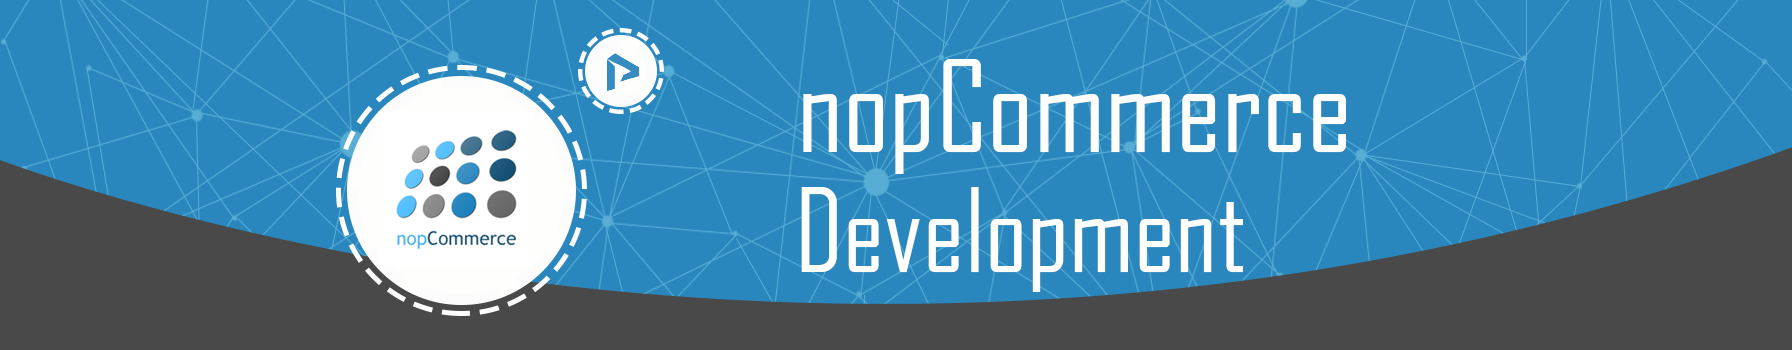 nopcommerce-development.png